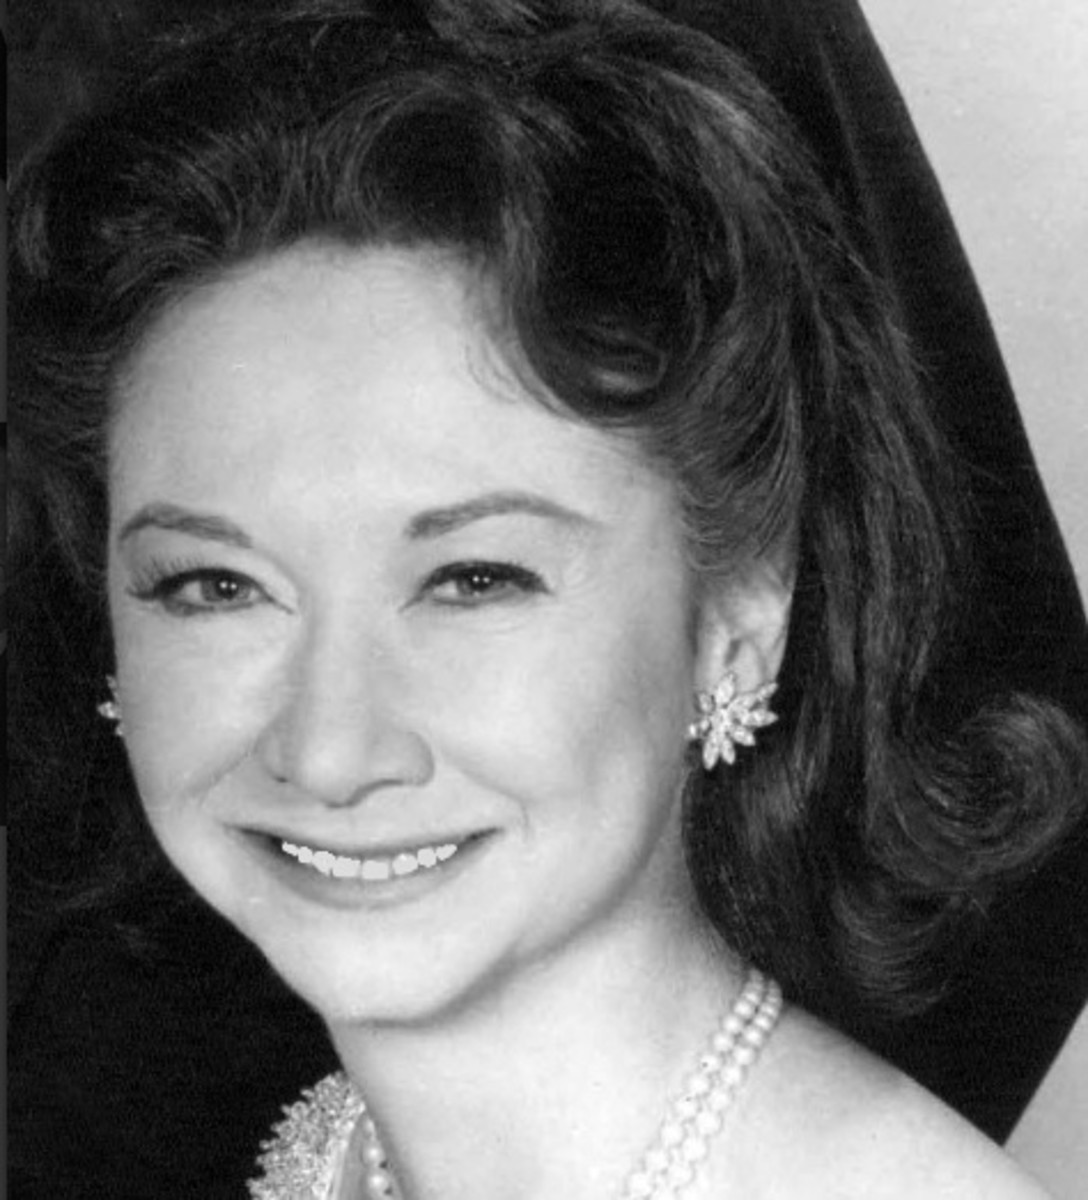 This studio promo photo of Dorothy Kilgallen was taken just hours before she died